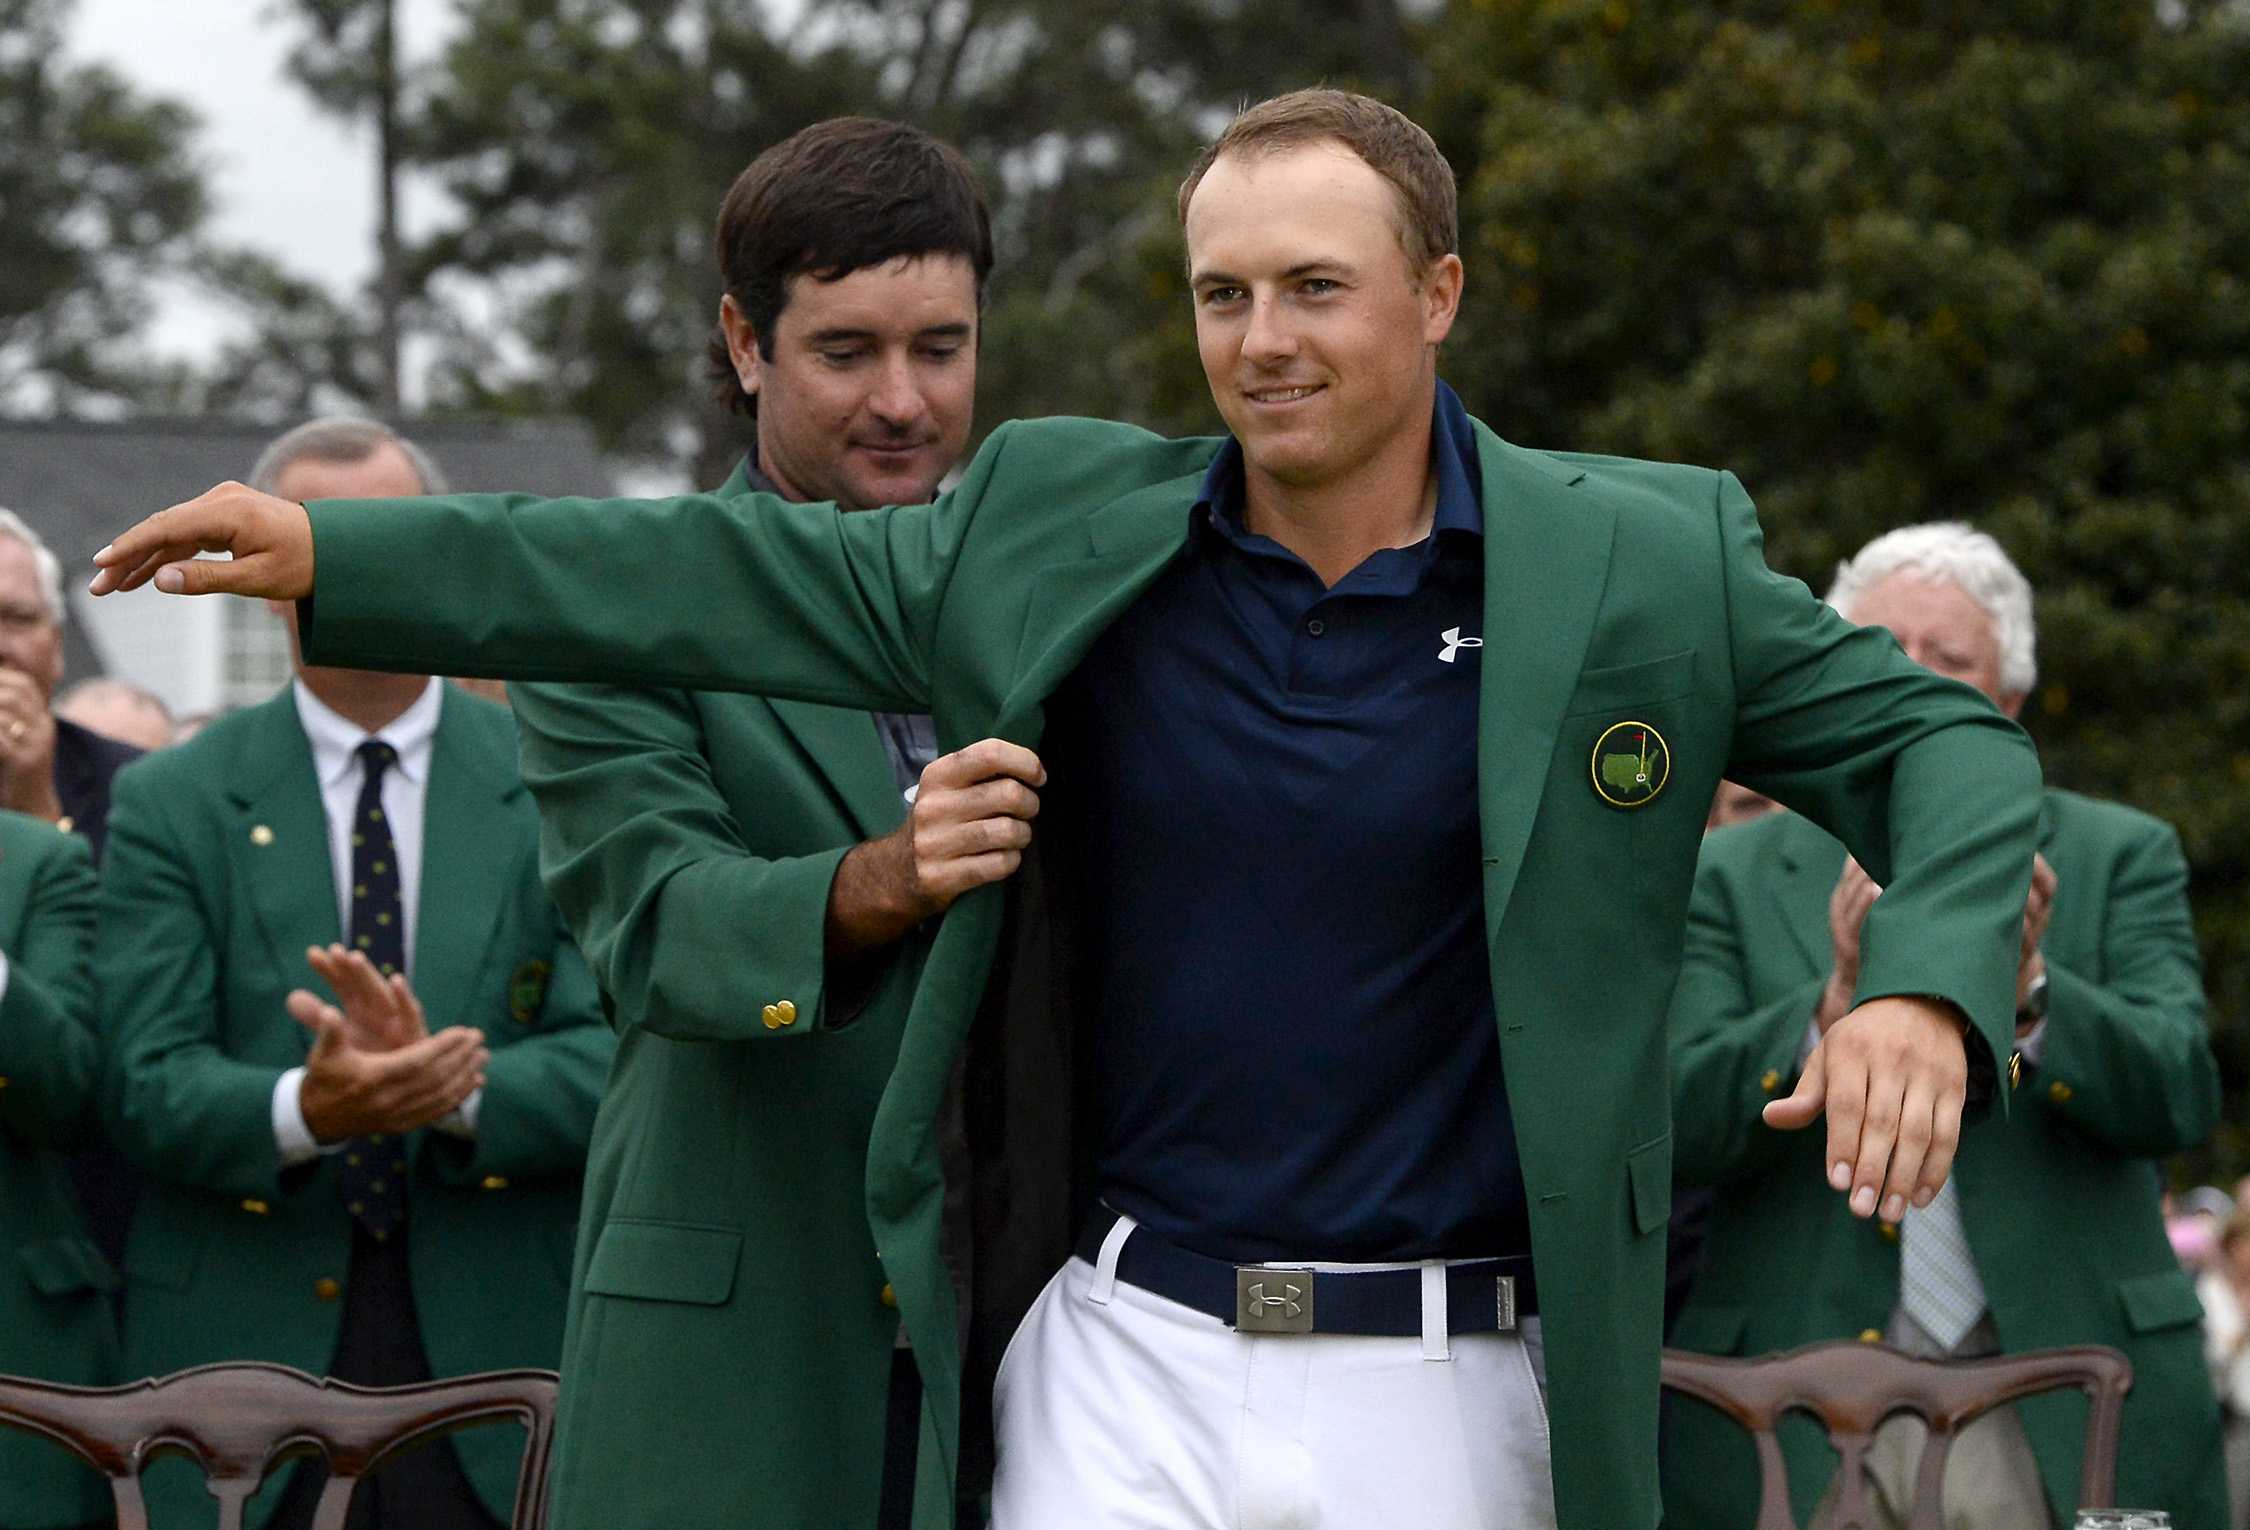 Masters 2015: Jordan Spieth wins Masters in record fashion